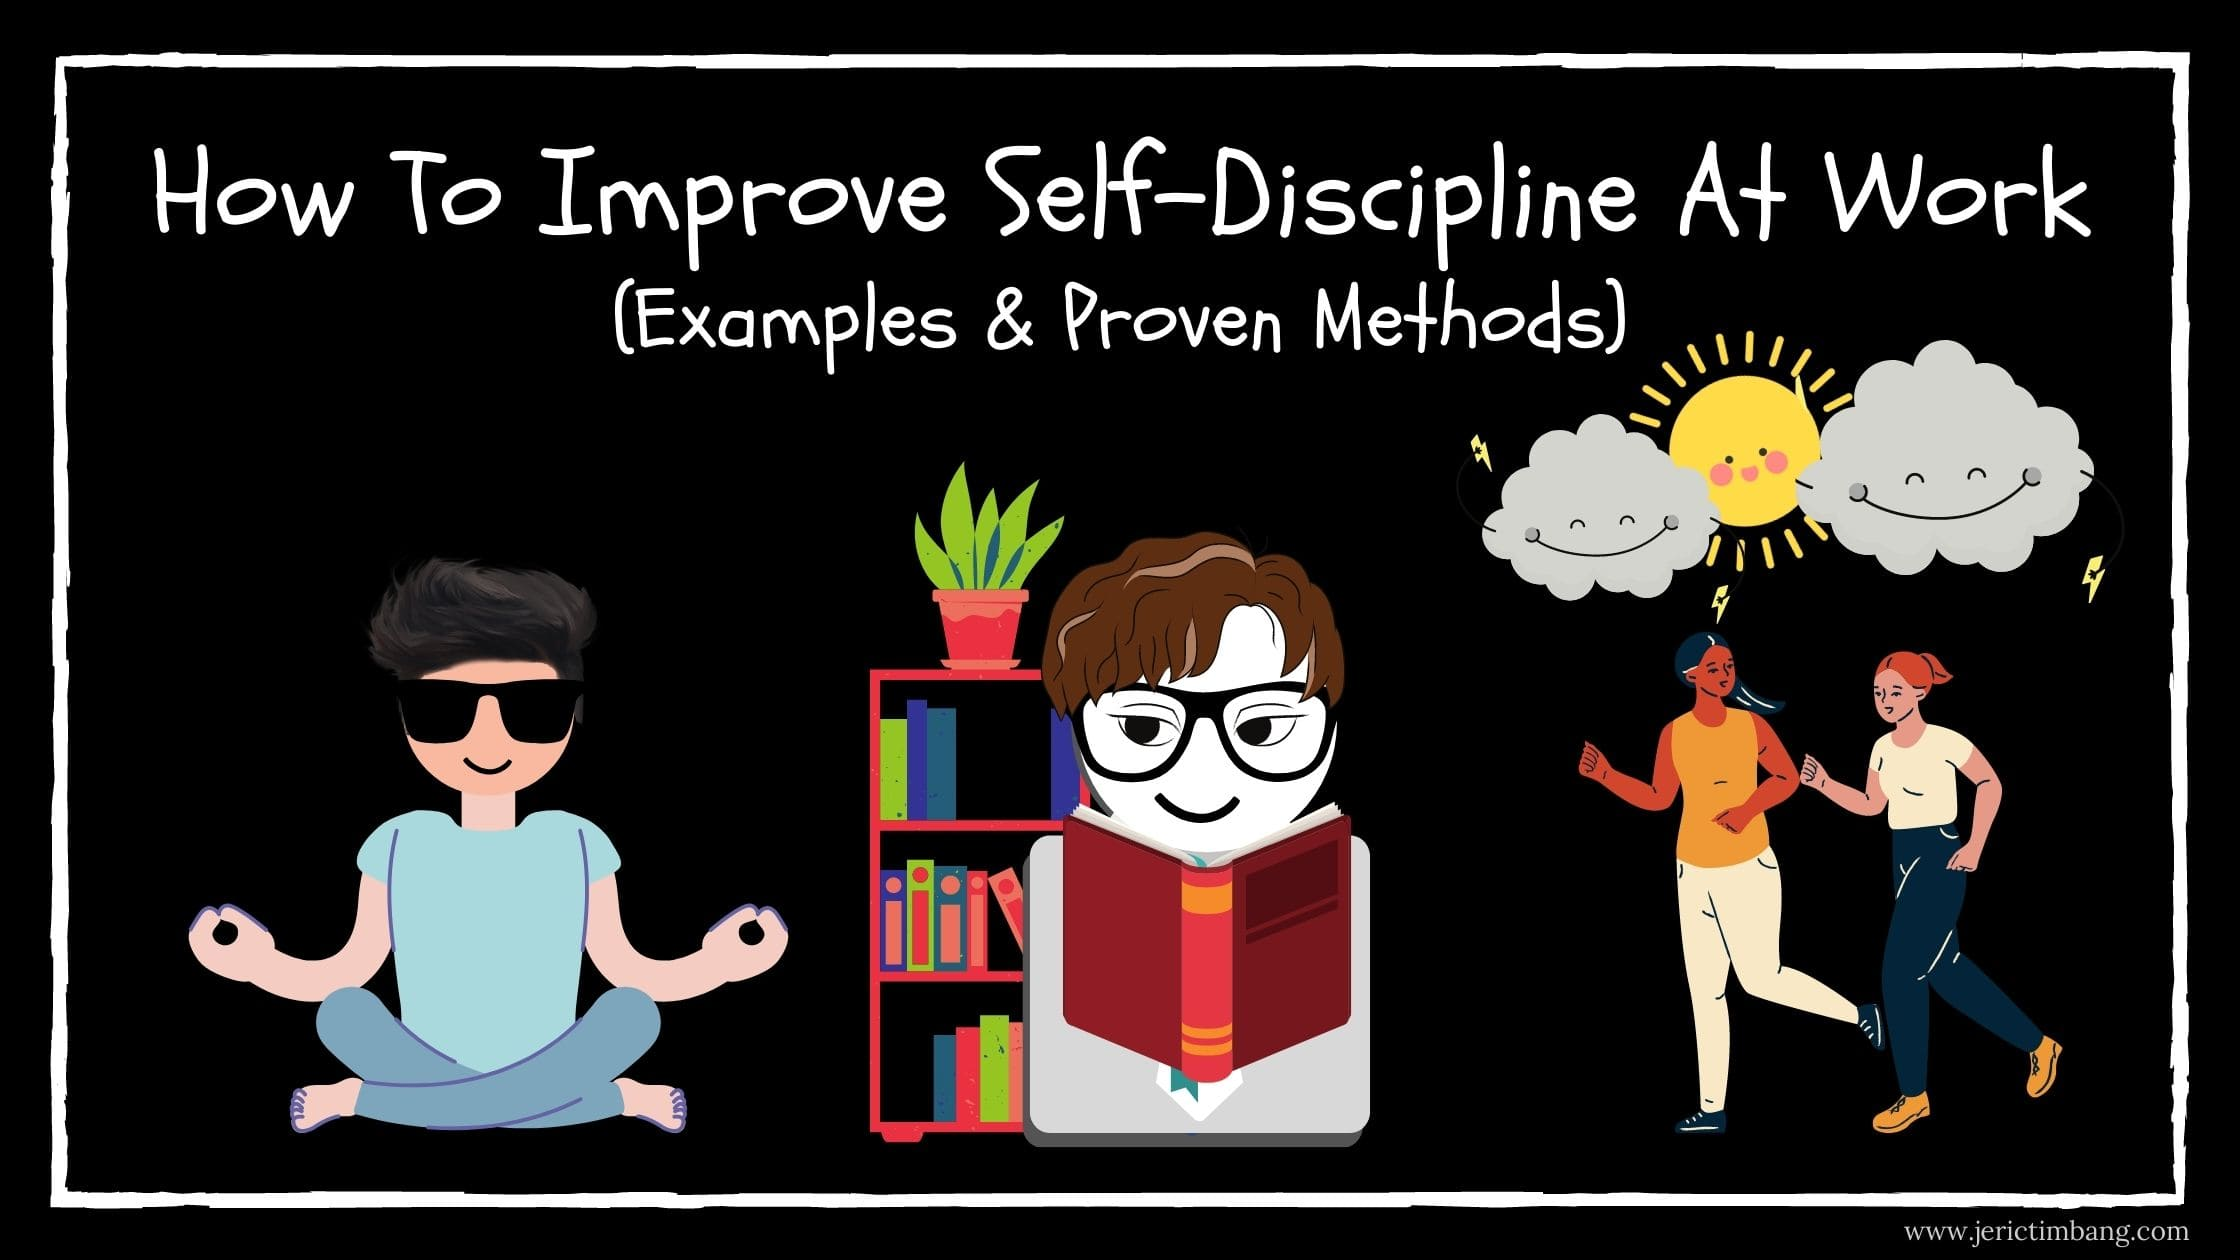 How To Improve Self-Discipline At Work (Examples & Proven Methods)